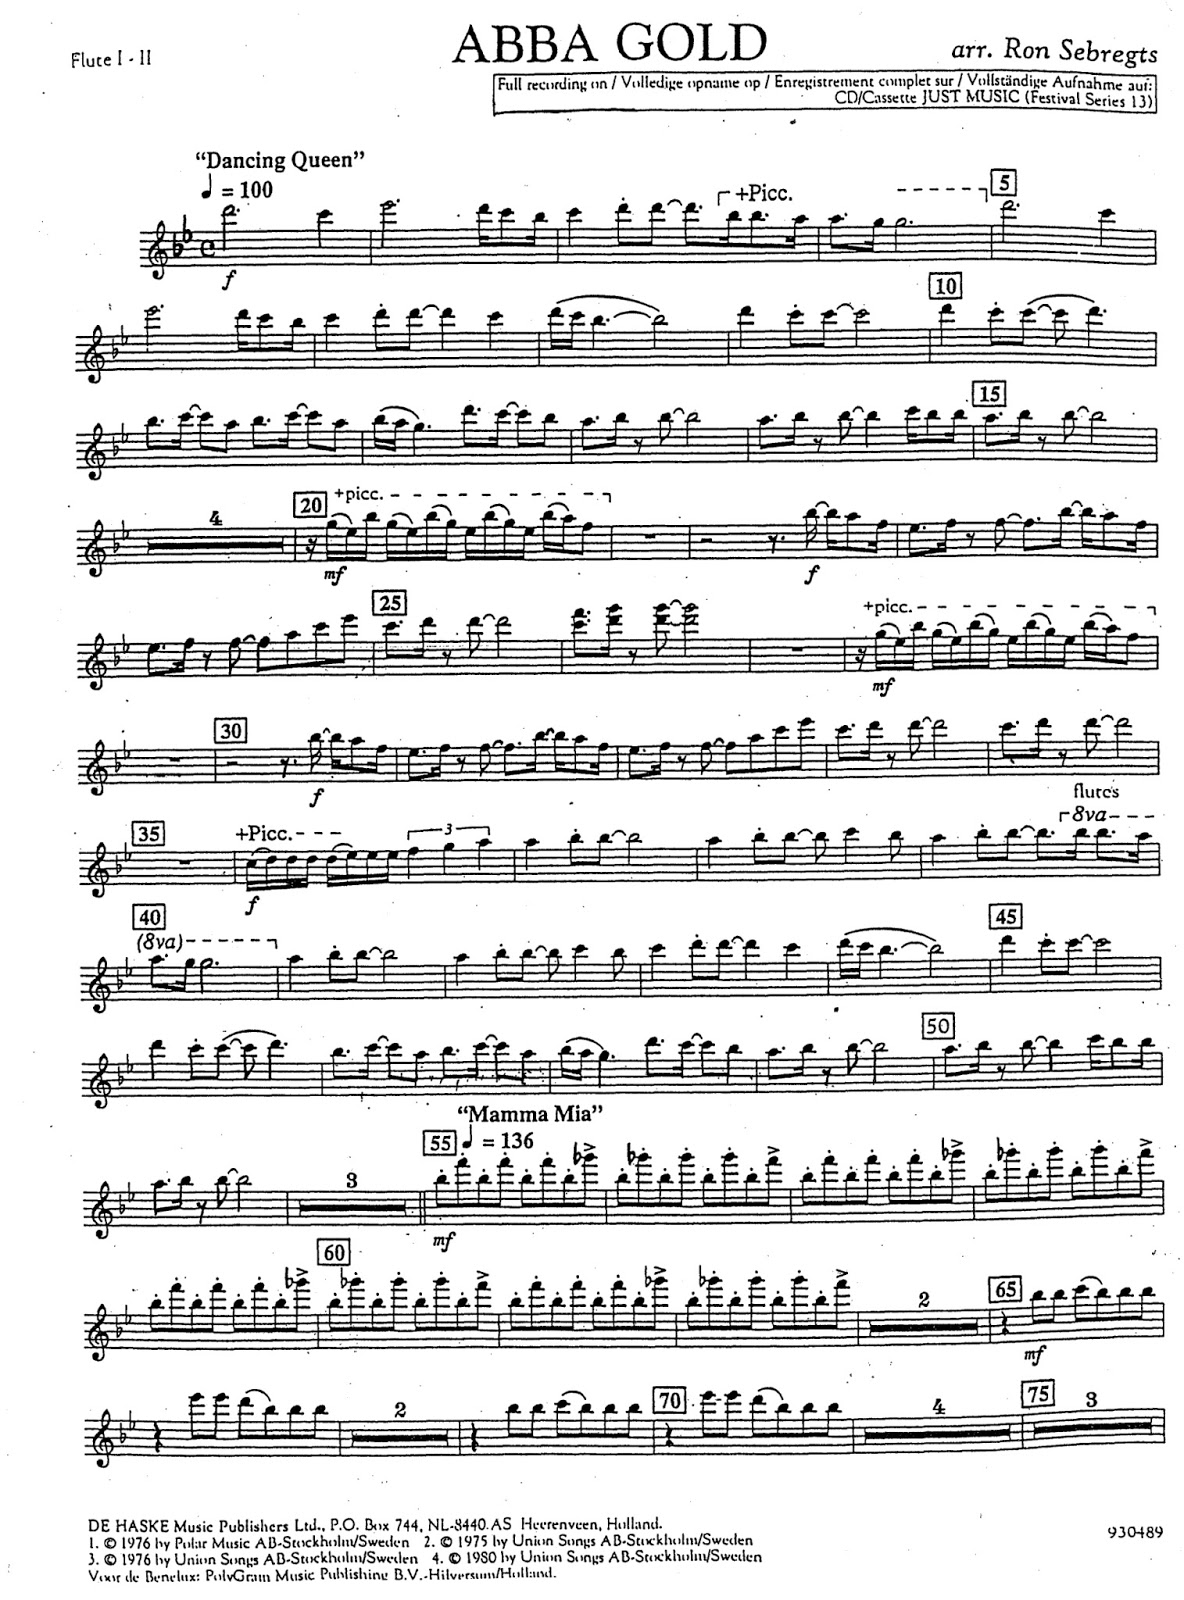 cruel angels thesis sheet music violin Neon genesis evangelion - cruel angel's thesis - free download as pdf file ( pdf), text file (txt) or read online for free i just read this manga cruel angel's thesis neon gensis evangelion piano 5 8 11 15 ichigo's sheet music http:// wwwichigosmusiccom 19 23 27 30 33 36 2 39 42 45 1 48 51 54 3 57 60.